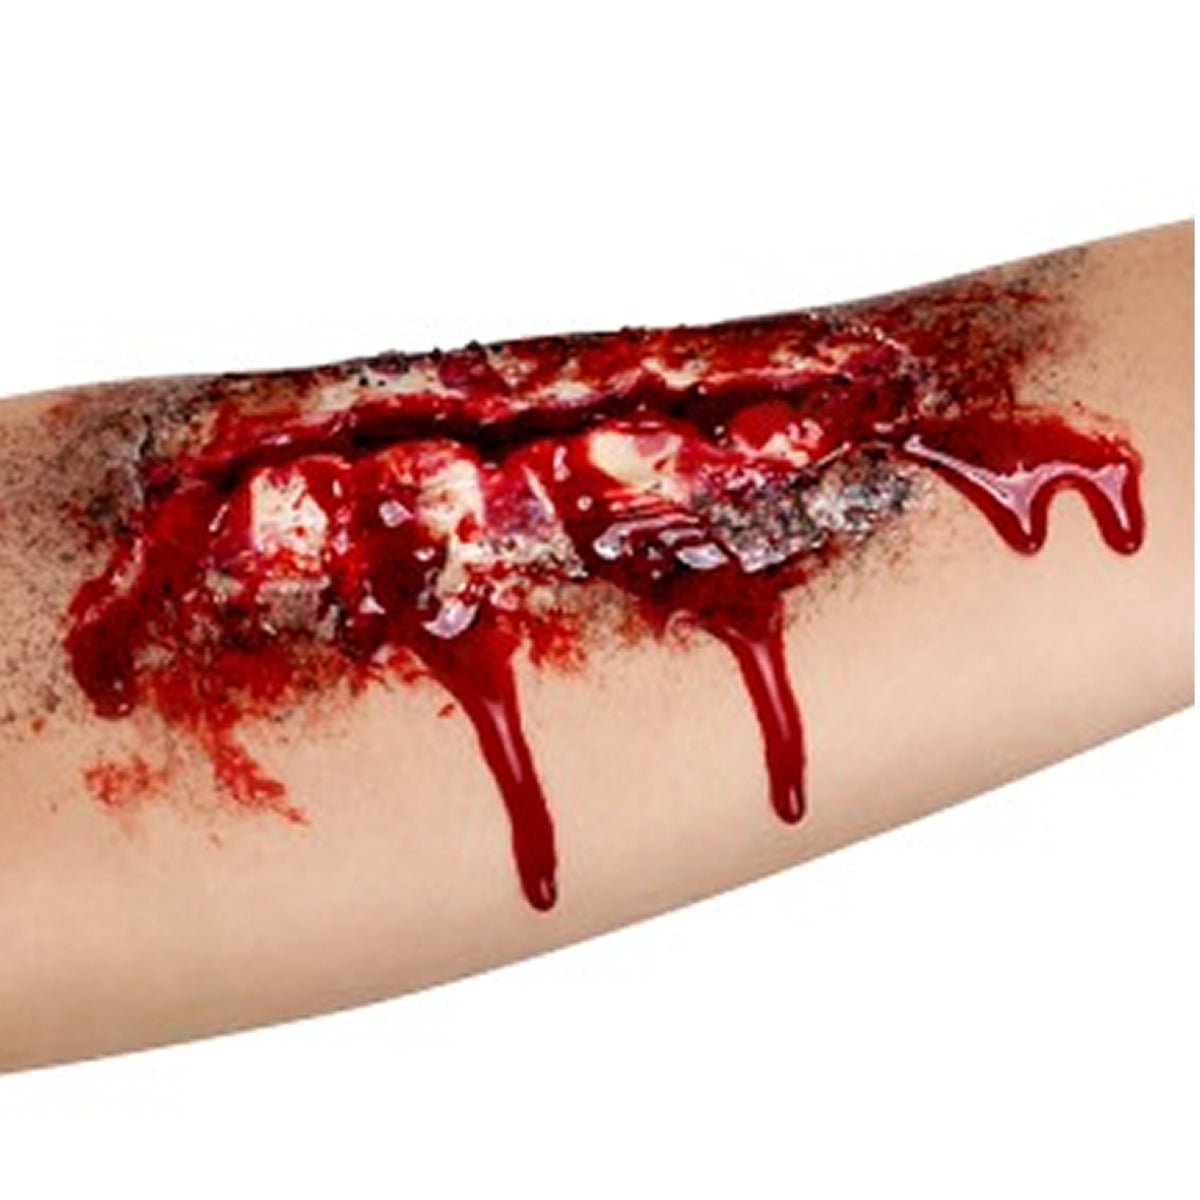 Smiffy's Prosthetic Open Wound Scar - Red Carpet FX - Professional Makeup